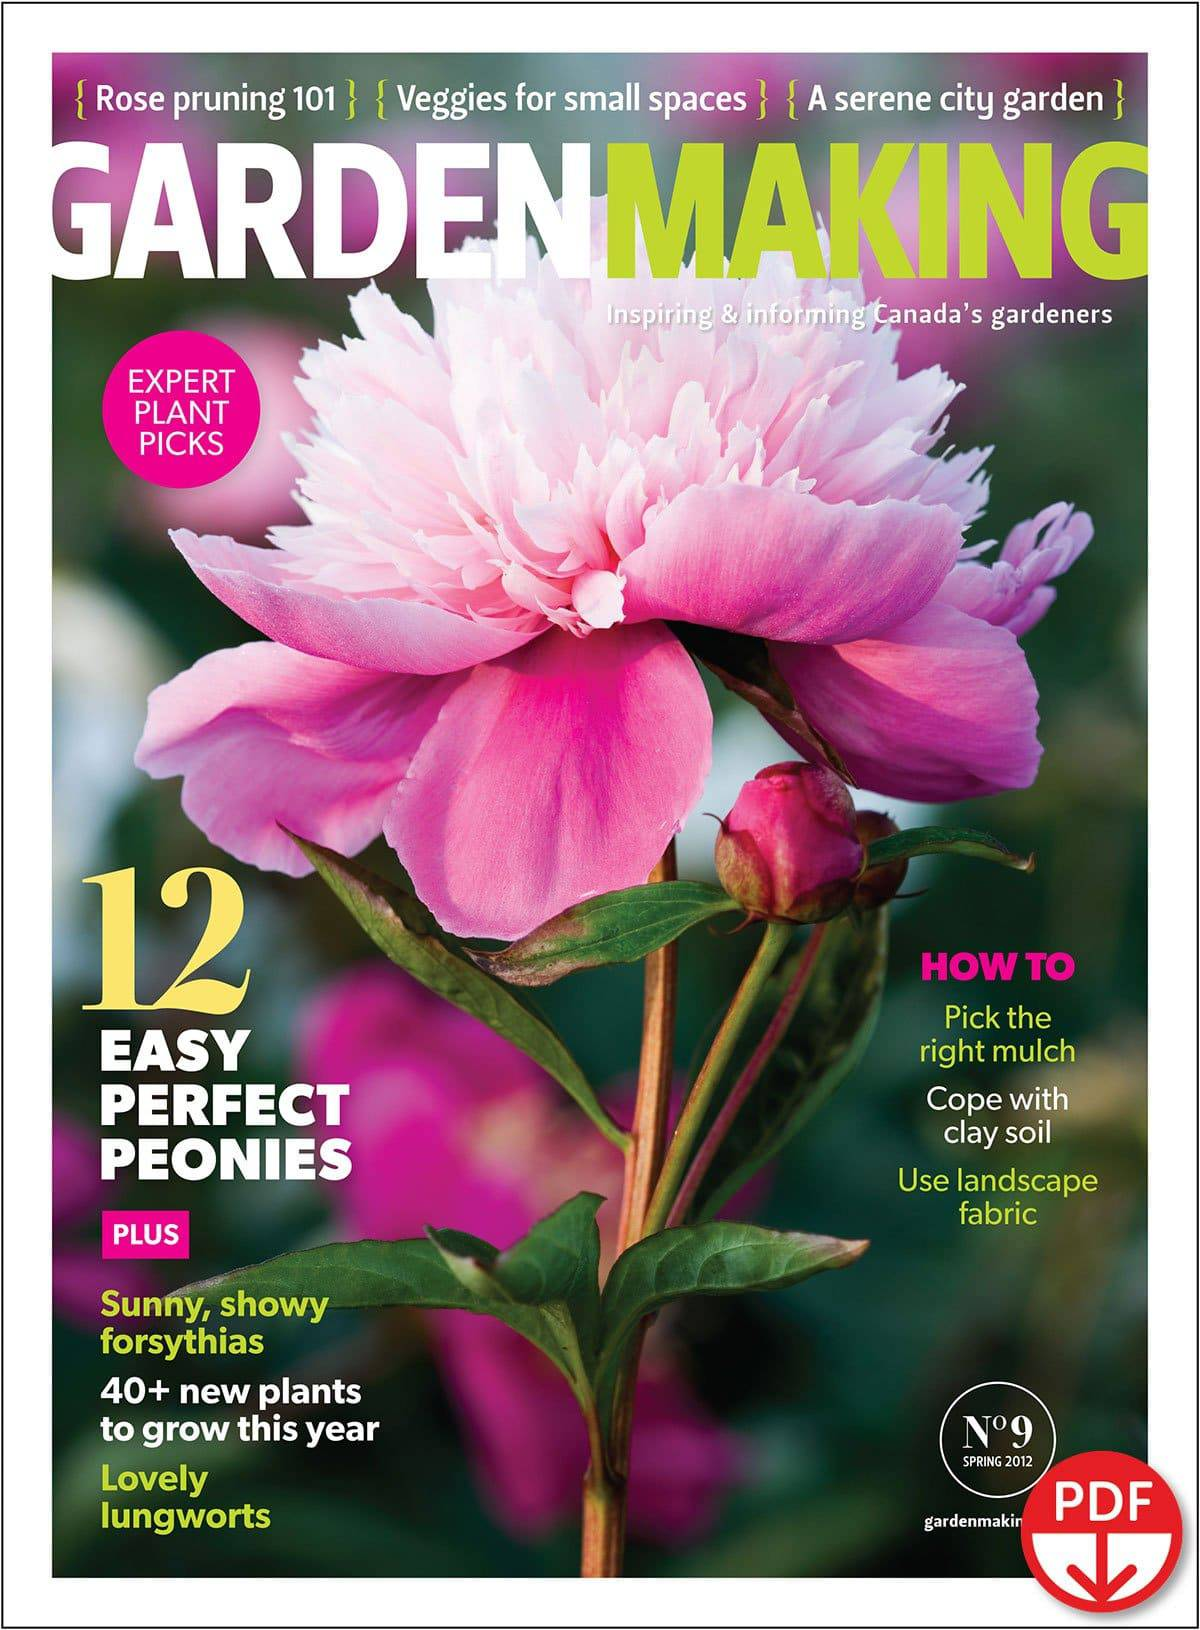 If you want peonies, we have great suggestions. Plant profiles include 12 easy, perfect peonies. Also in this issue: sunny forsythias and lovely lungworts.